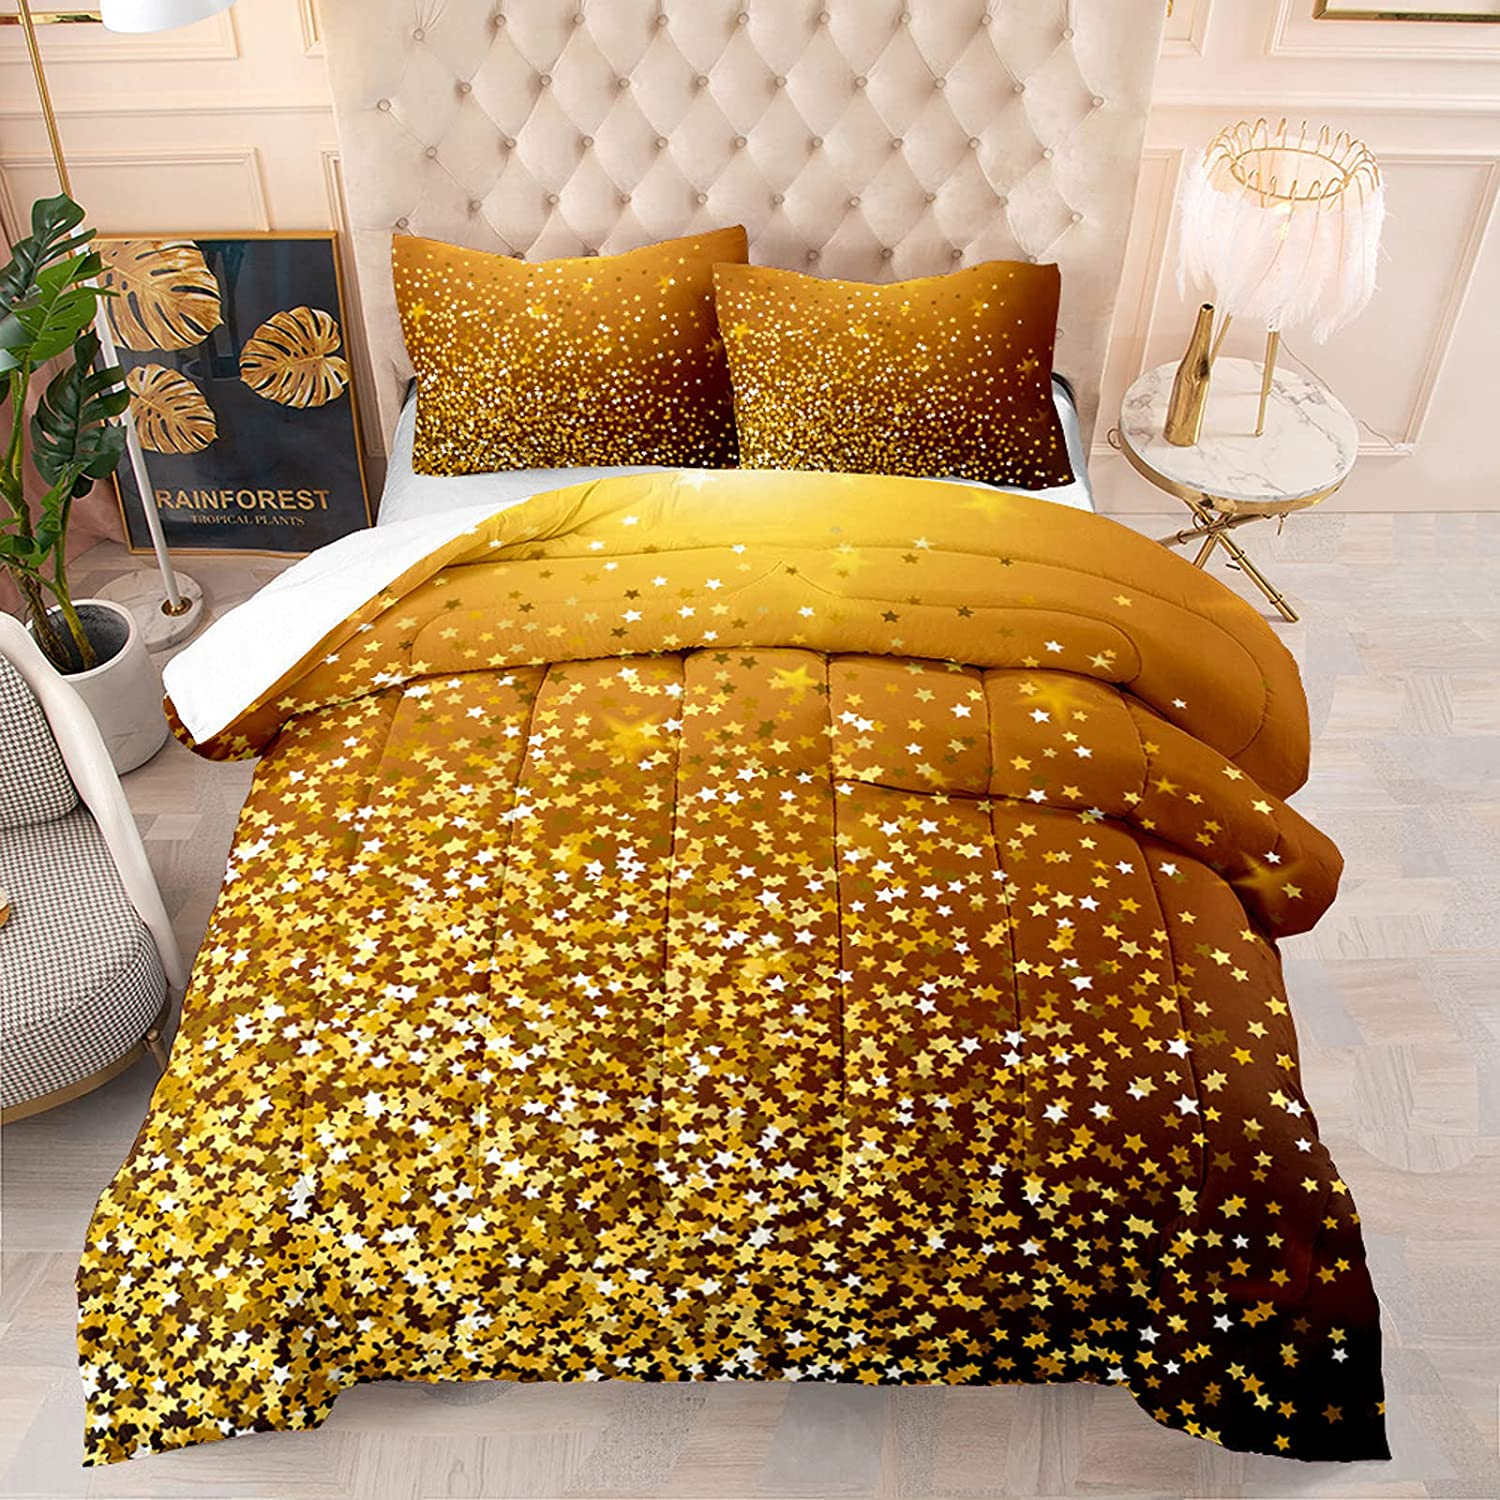 Gold Bling Stars Comforter Set Twin Size Golden Super sale Piece Glitter Free Shipping New 2